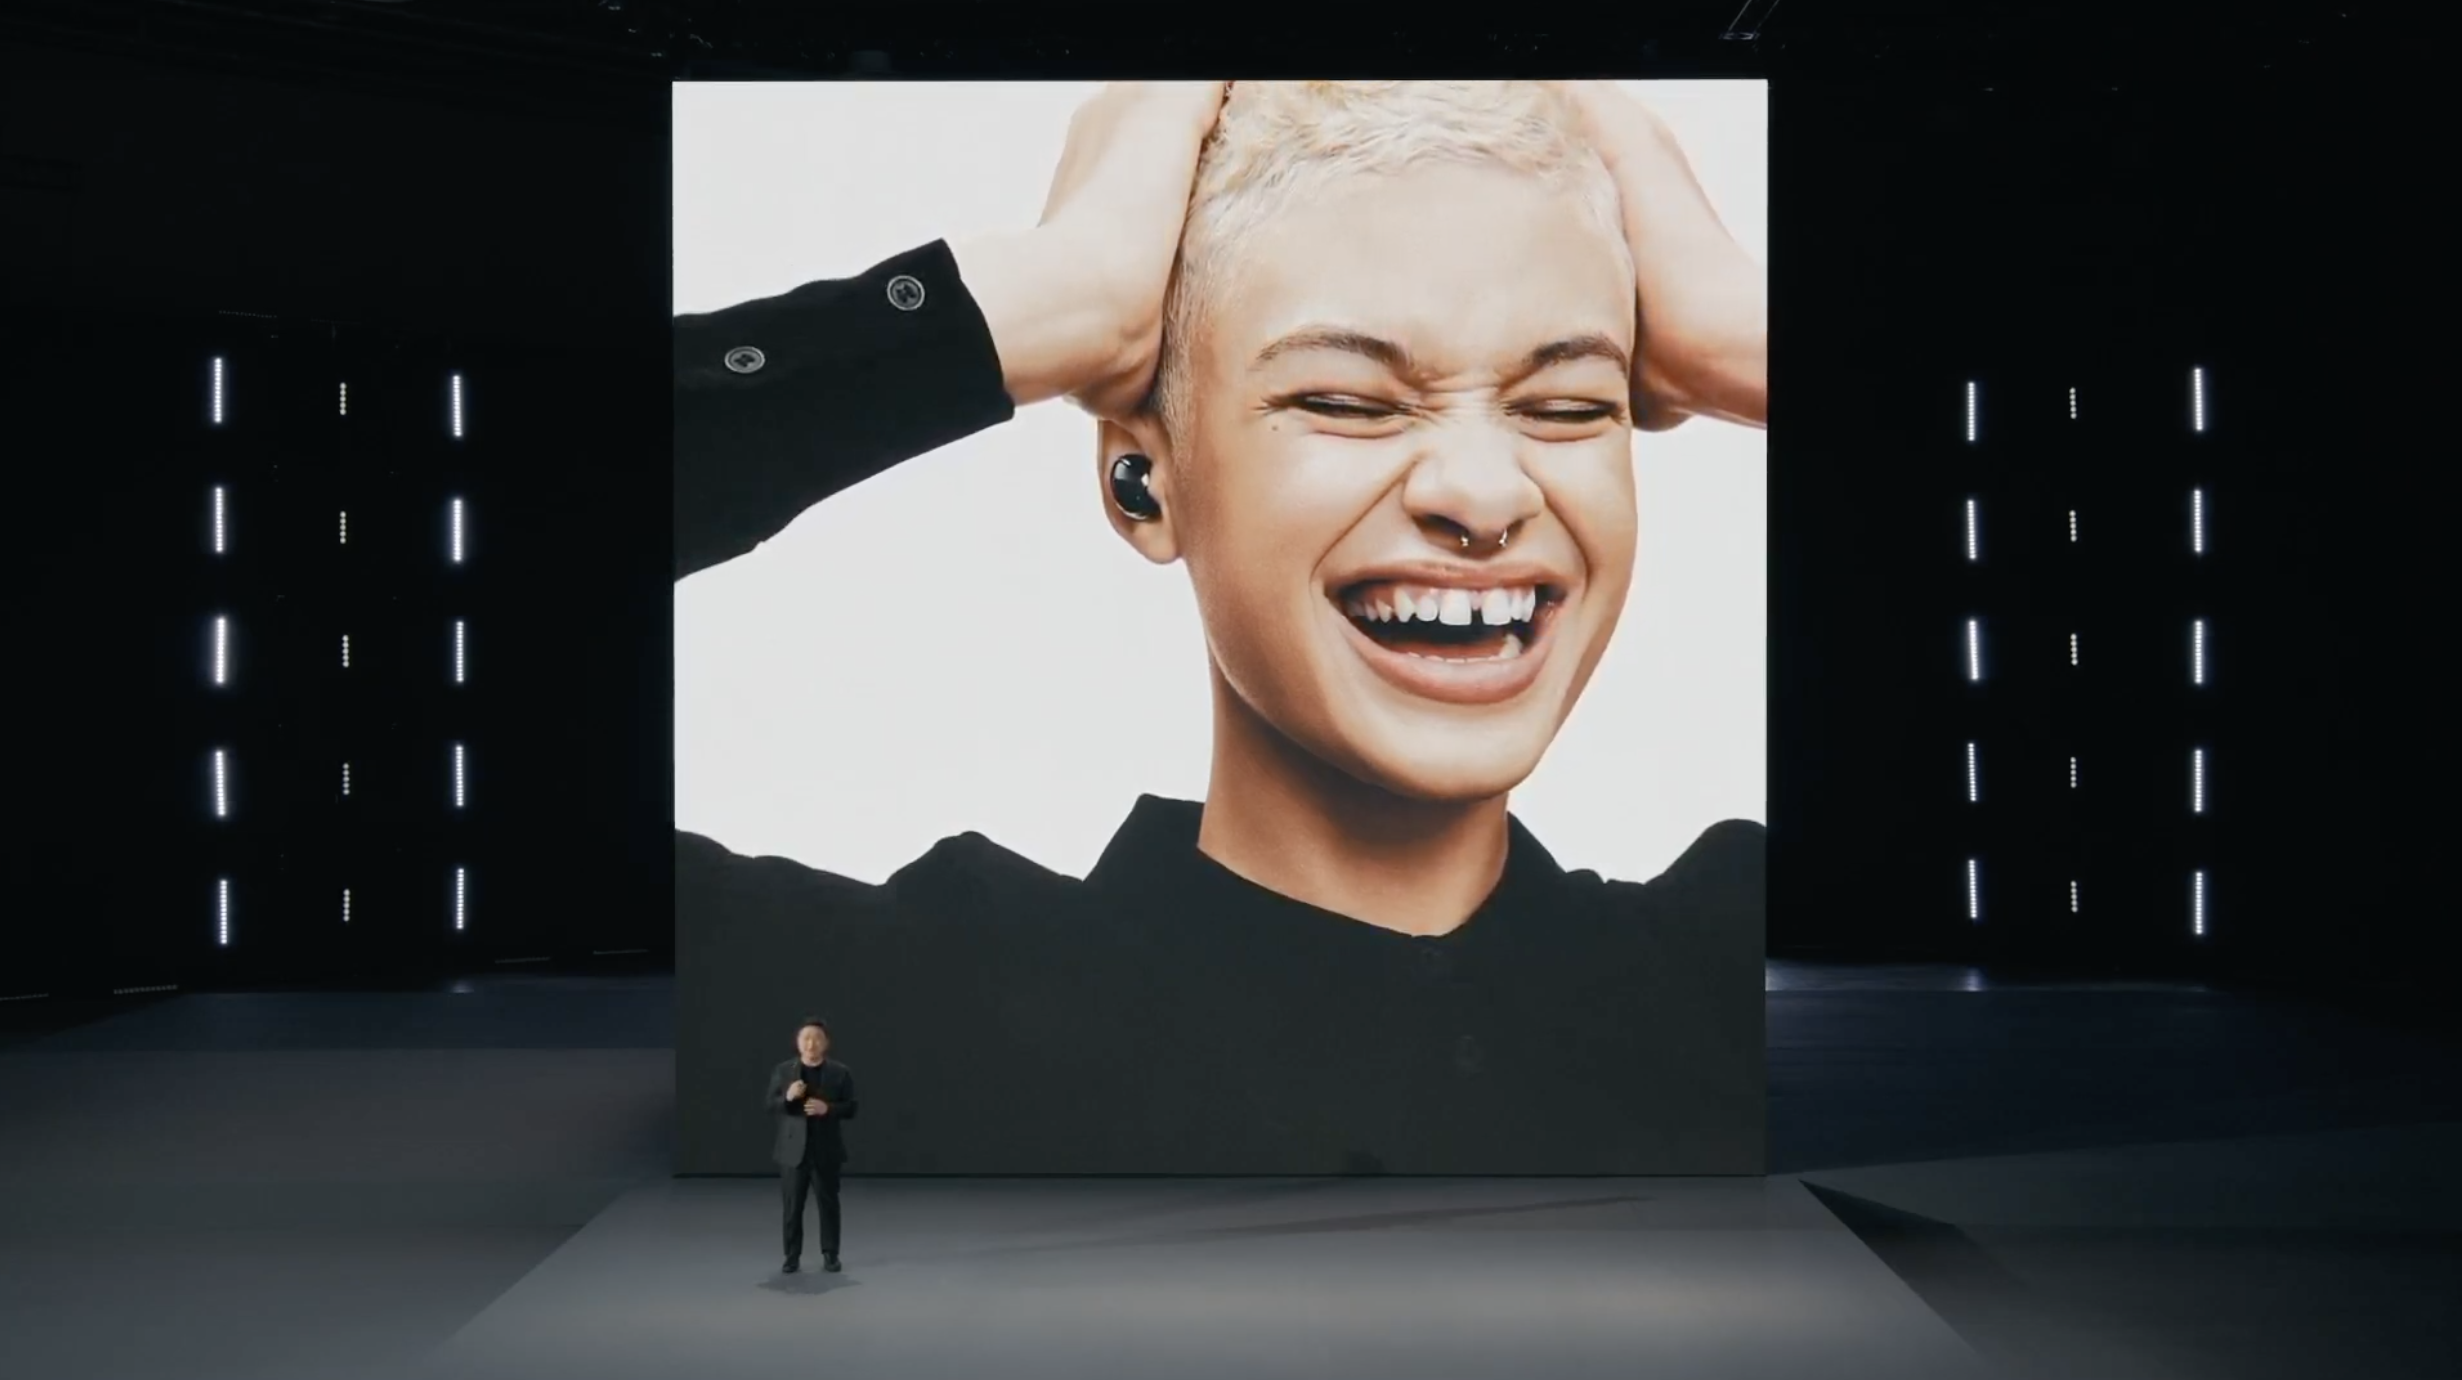 Samsung announcing the Galaxy Buds Pro headphones